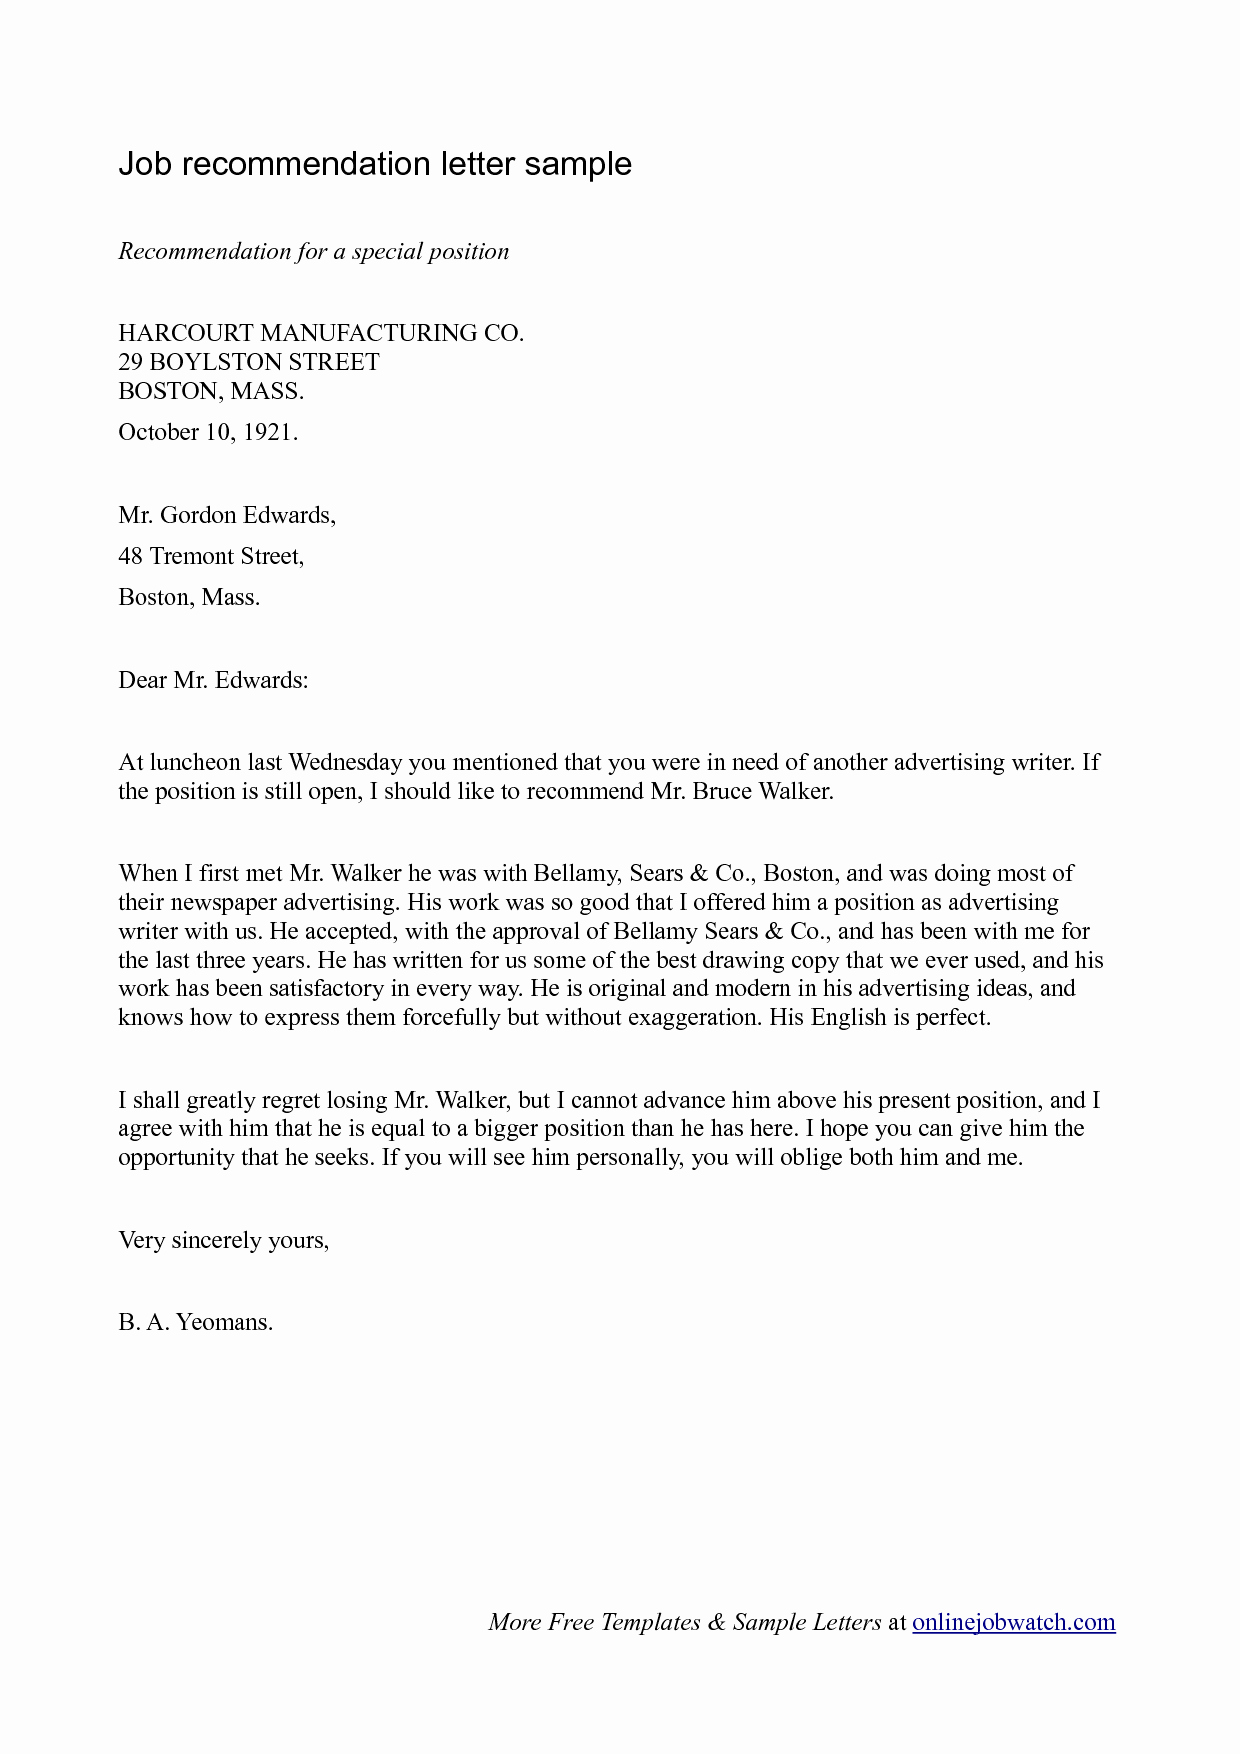 Business Reference Letter Template Best Of Simple Guide Professional Reference Letter with Samples